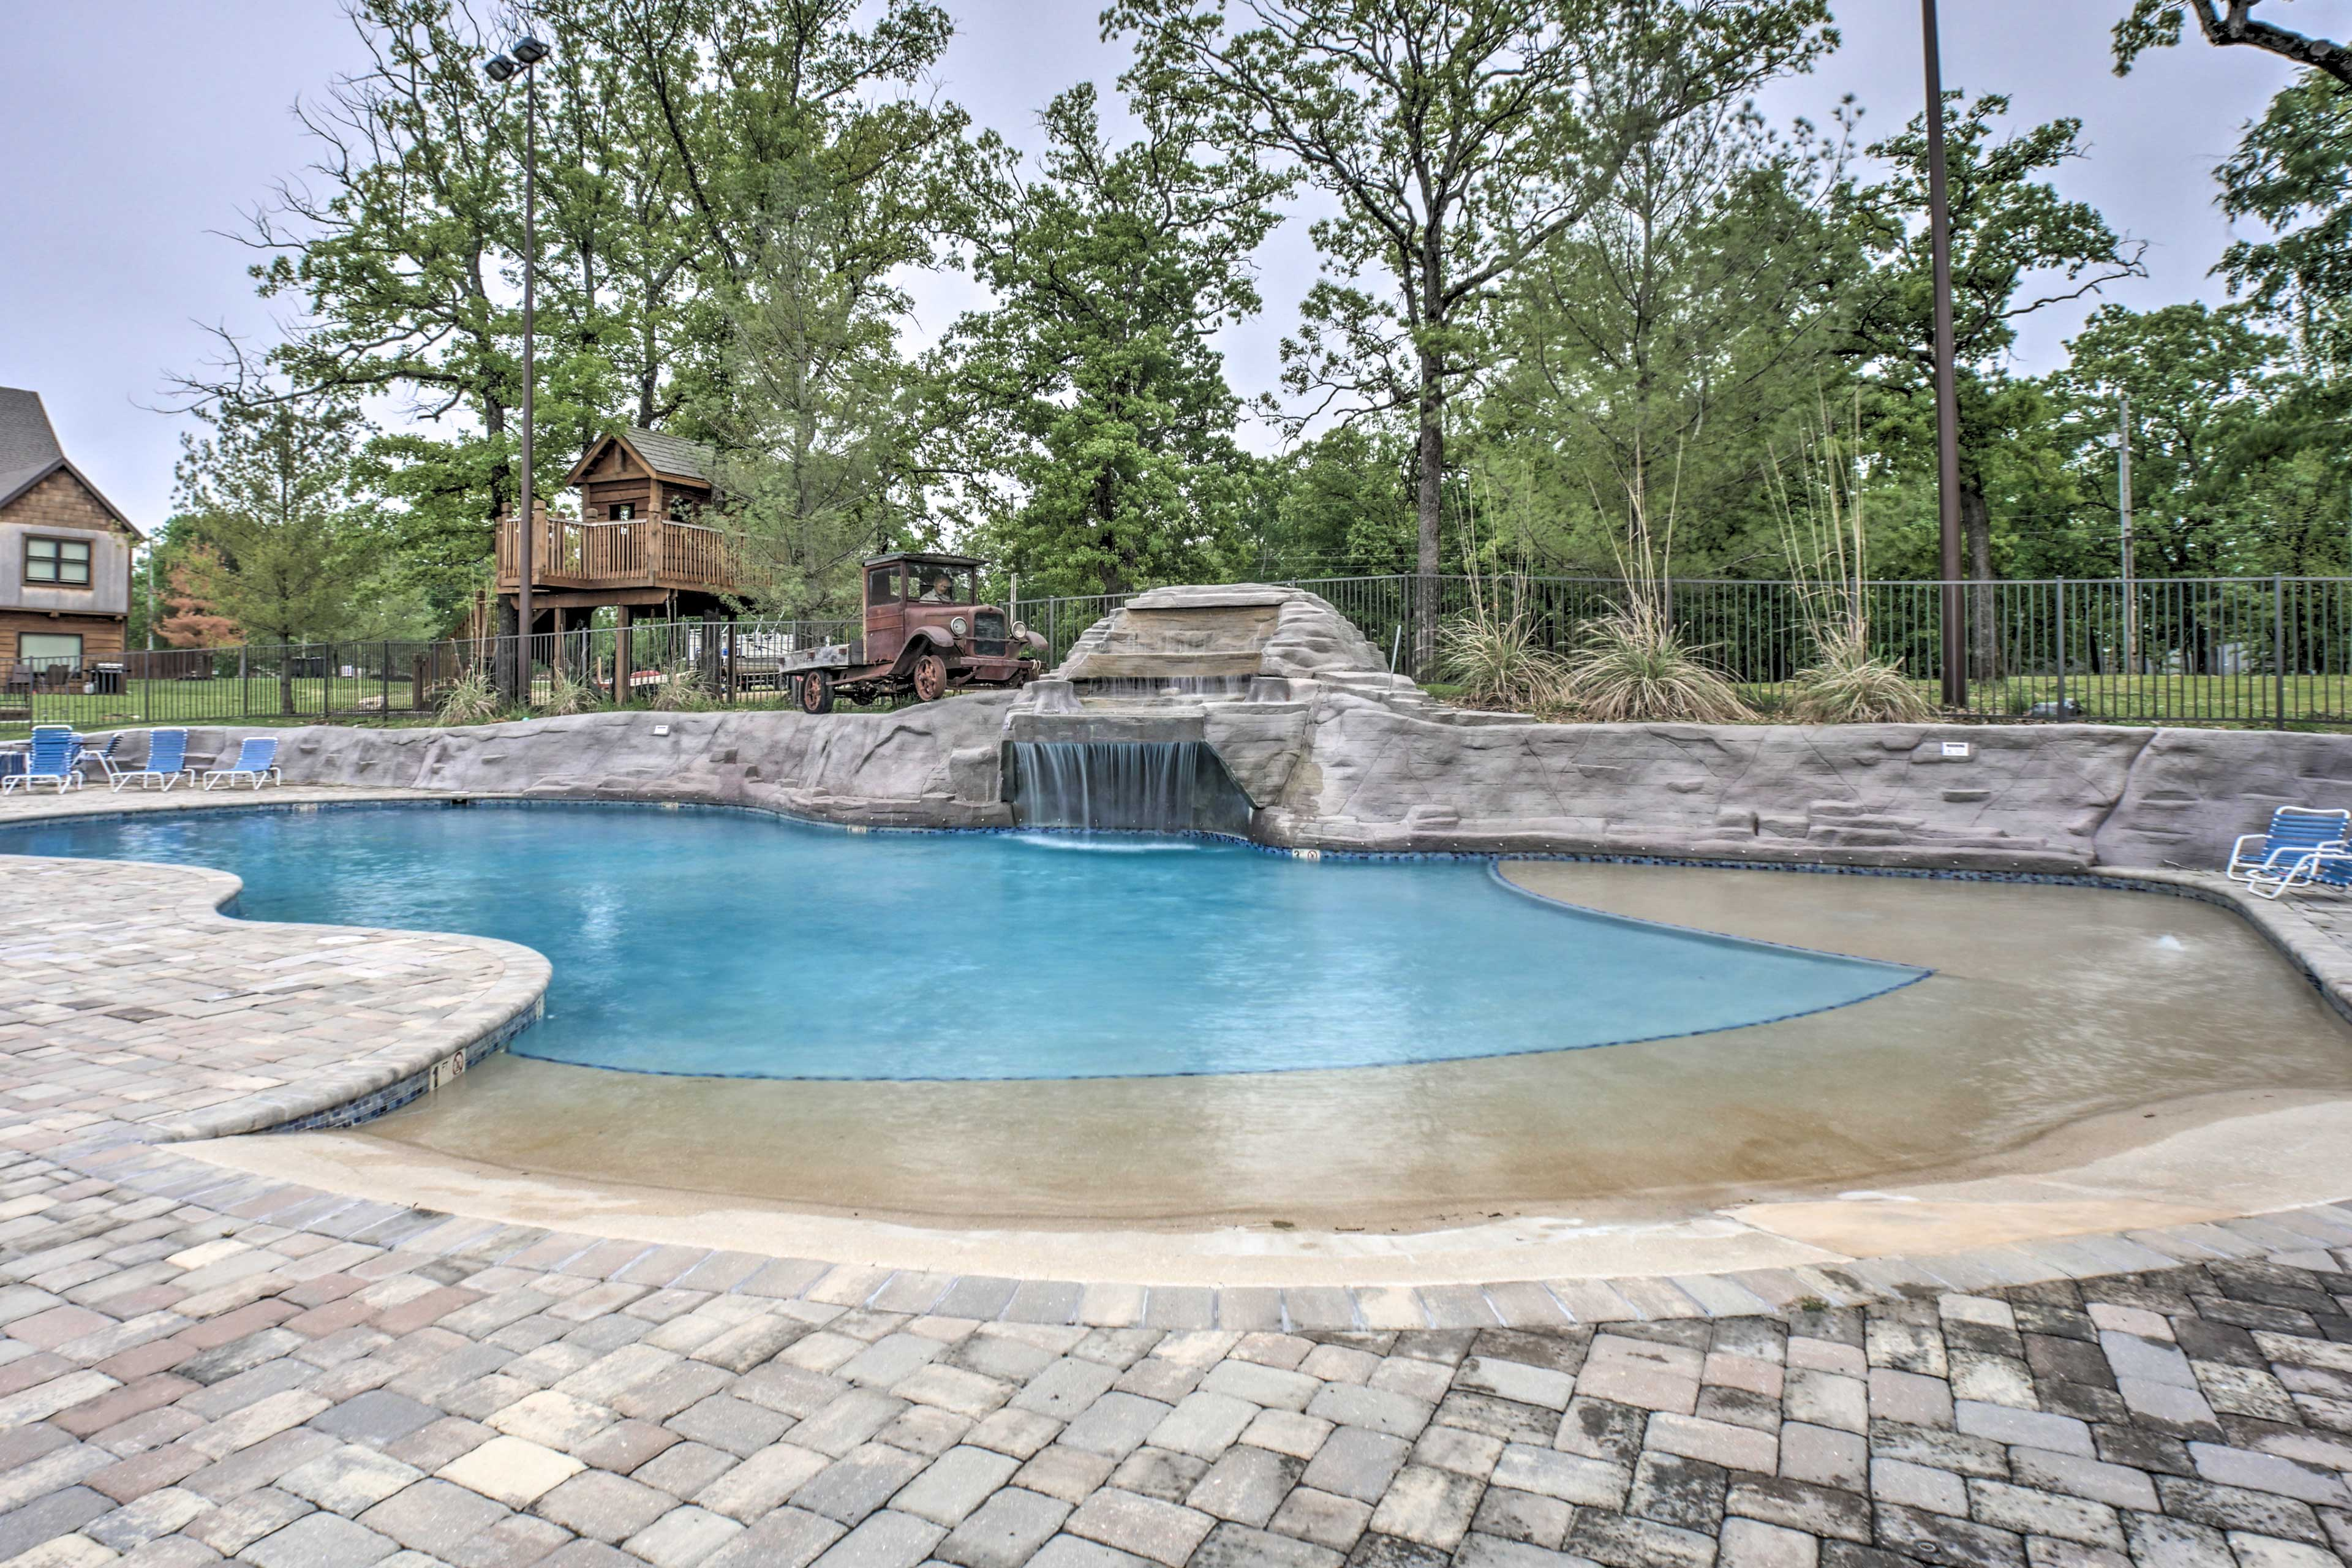 Let kids splash in the pool with a water feature.